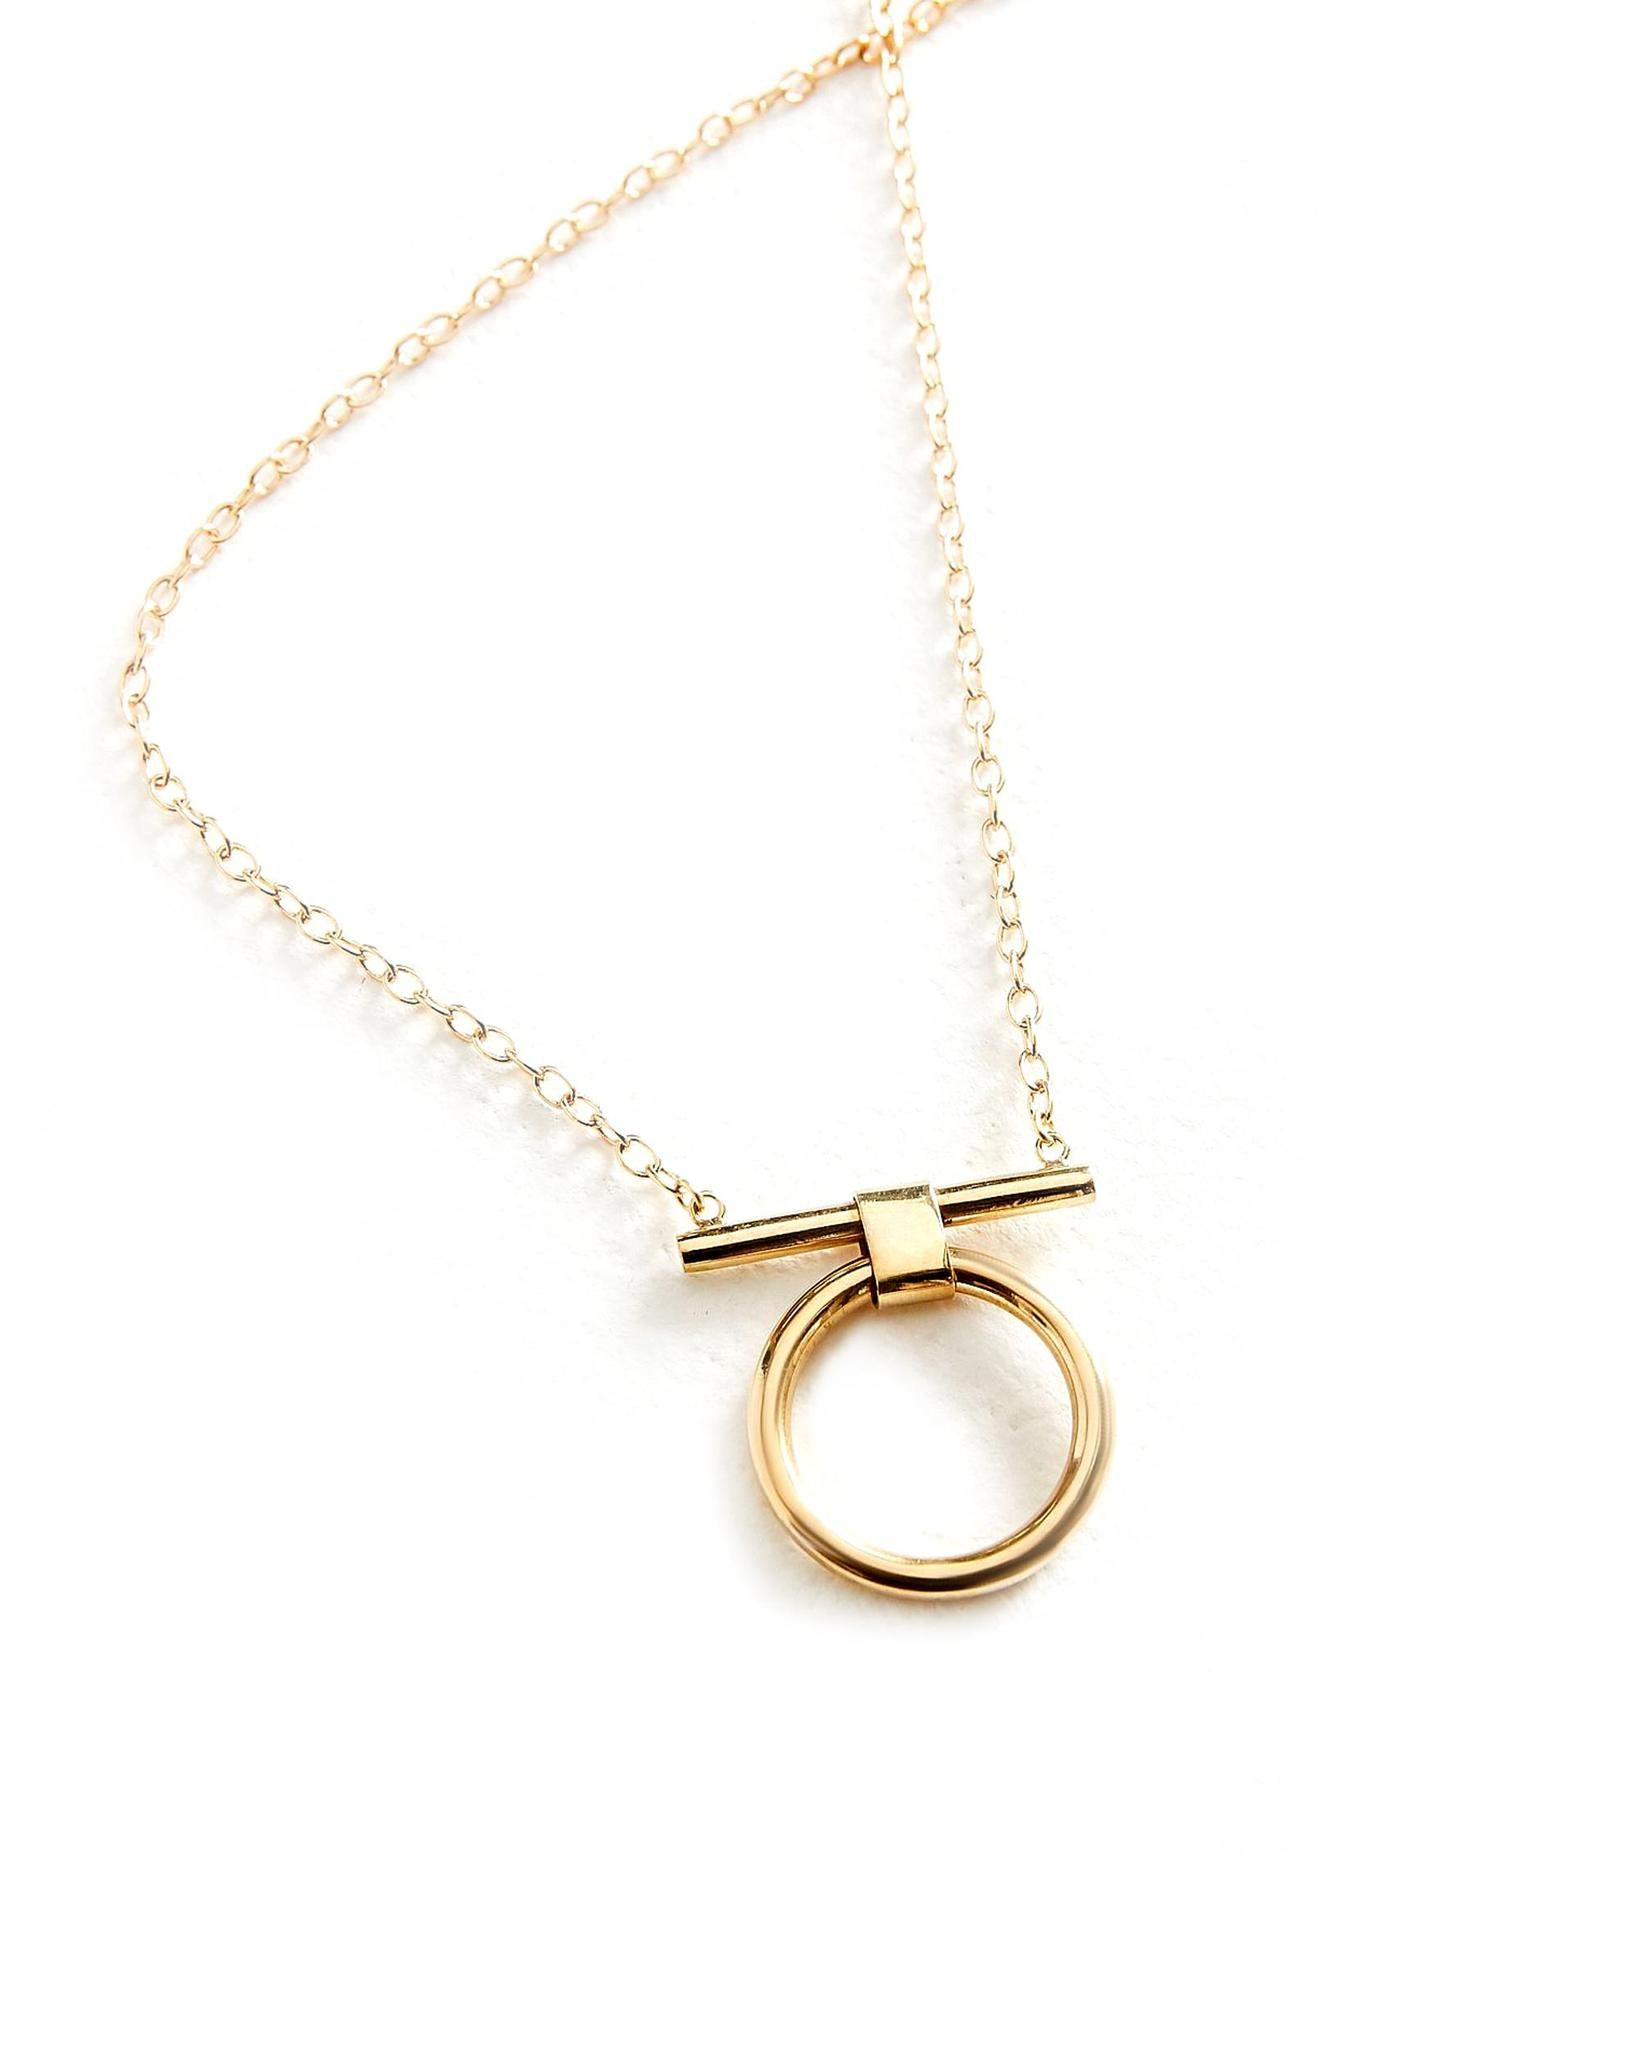 SOKO Delicate Isle Necklace